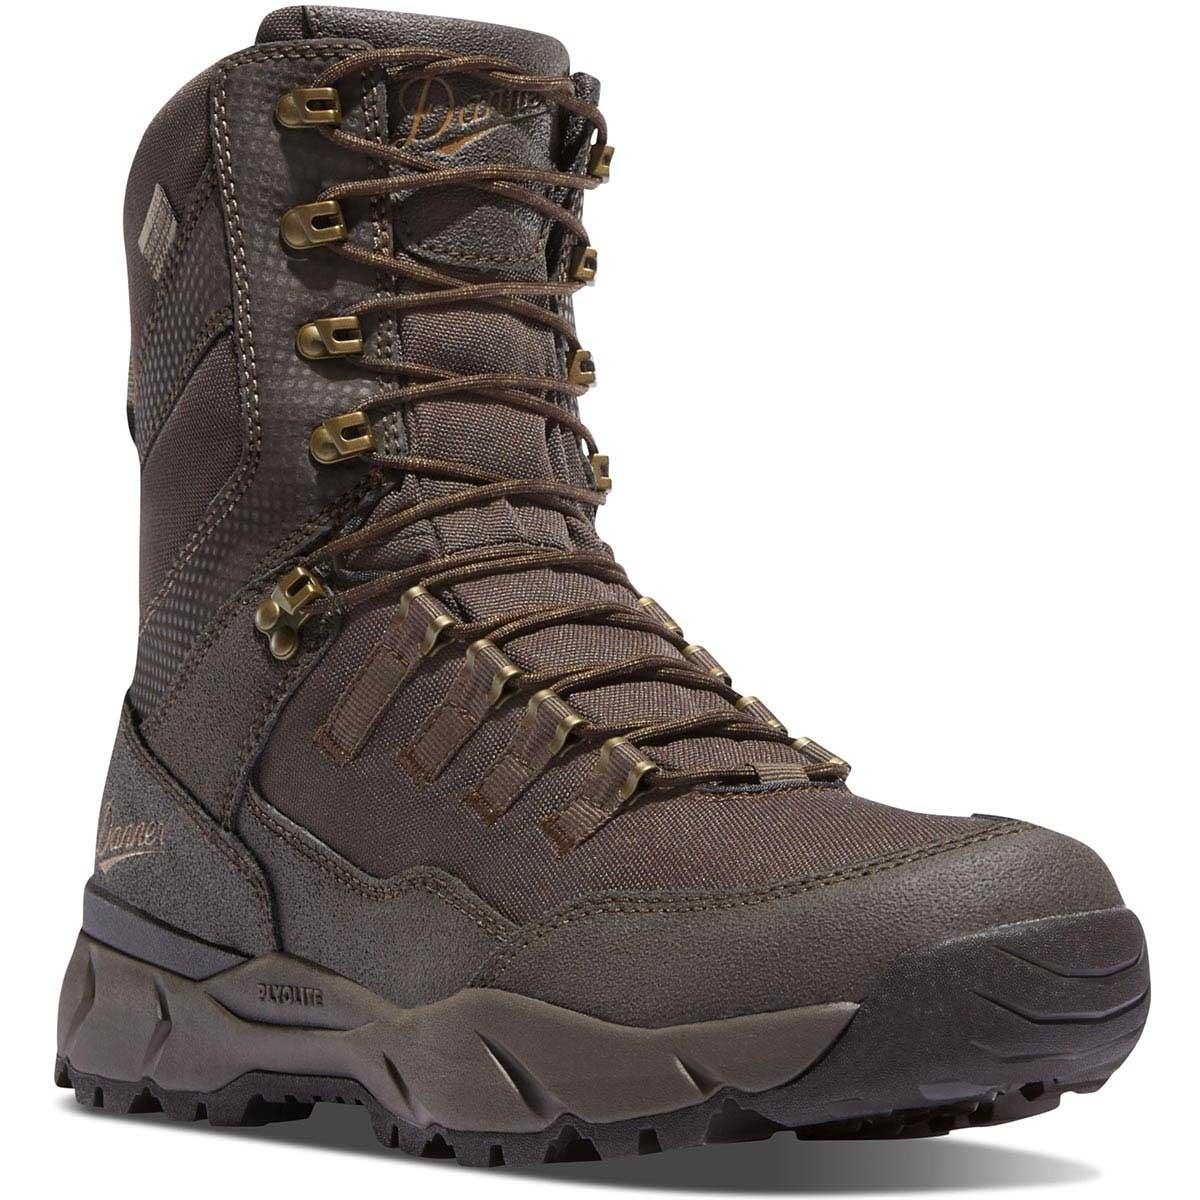 """Danner Vital 8"""" Non-Insulated Hunting Boots_1.jpg"""